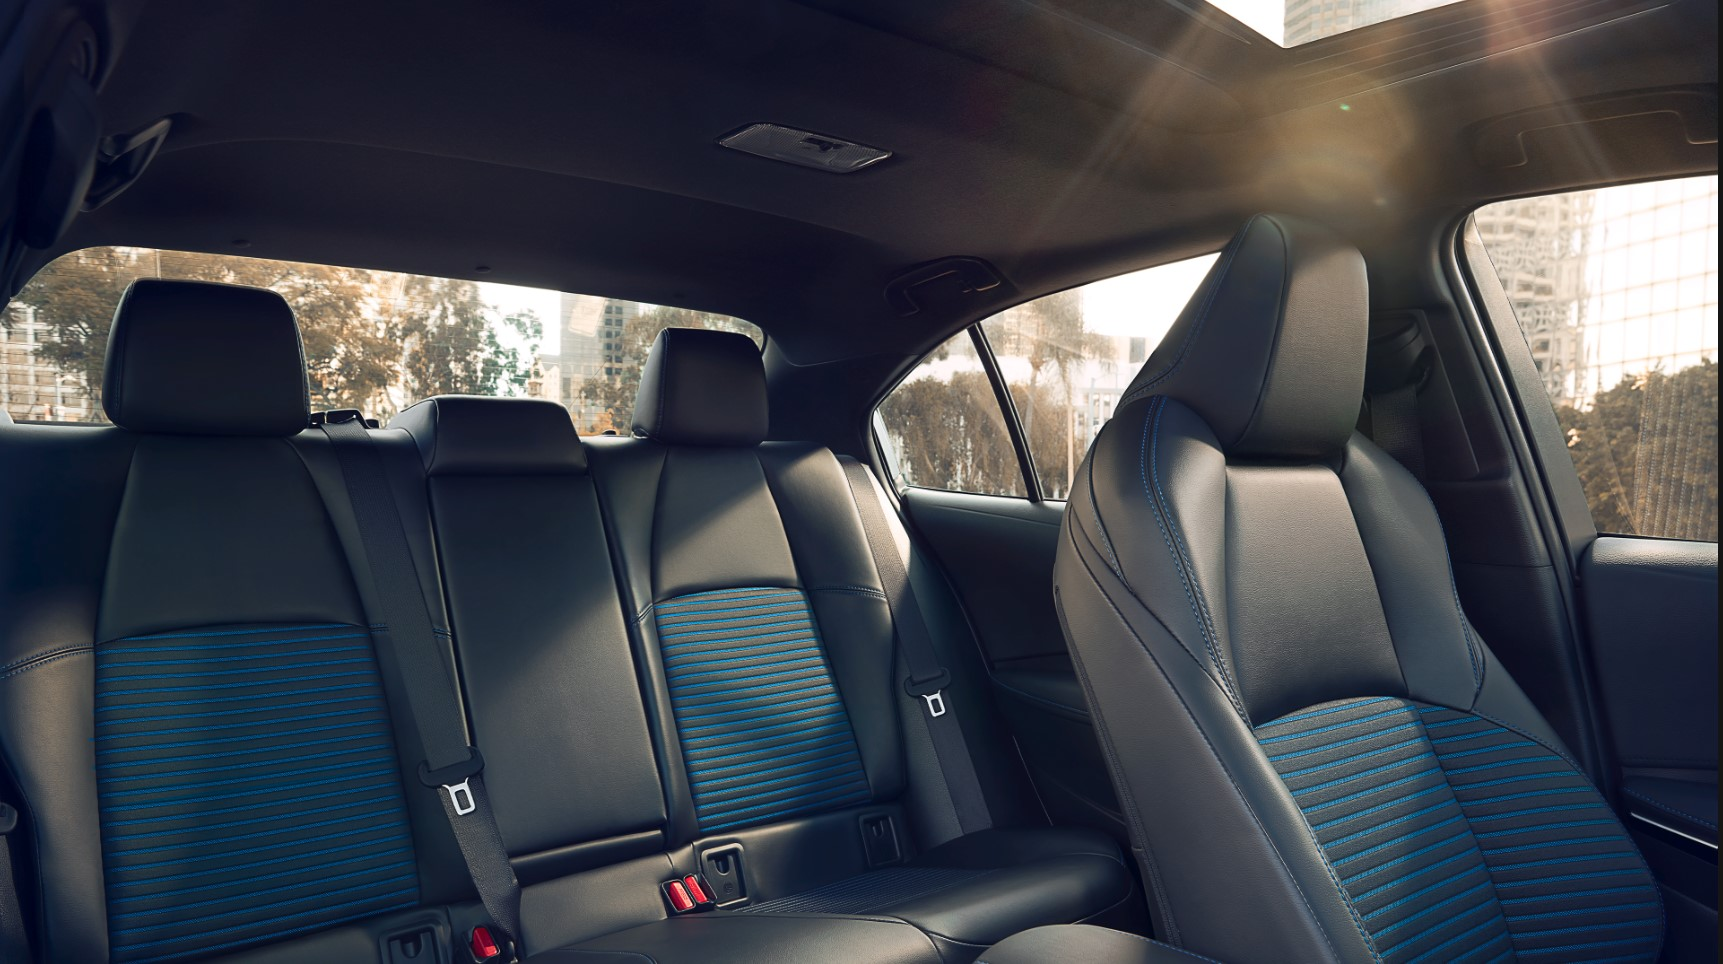 2020 Corolla Rear Seating